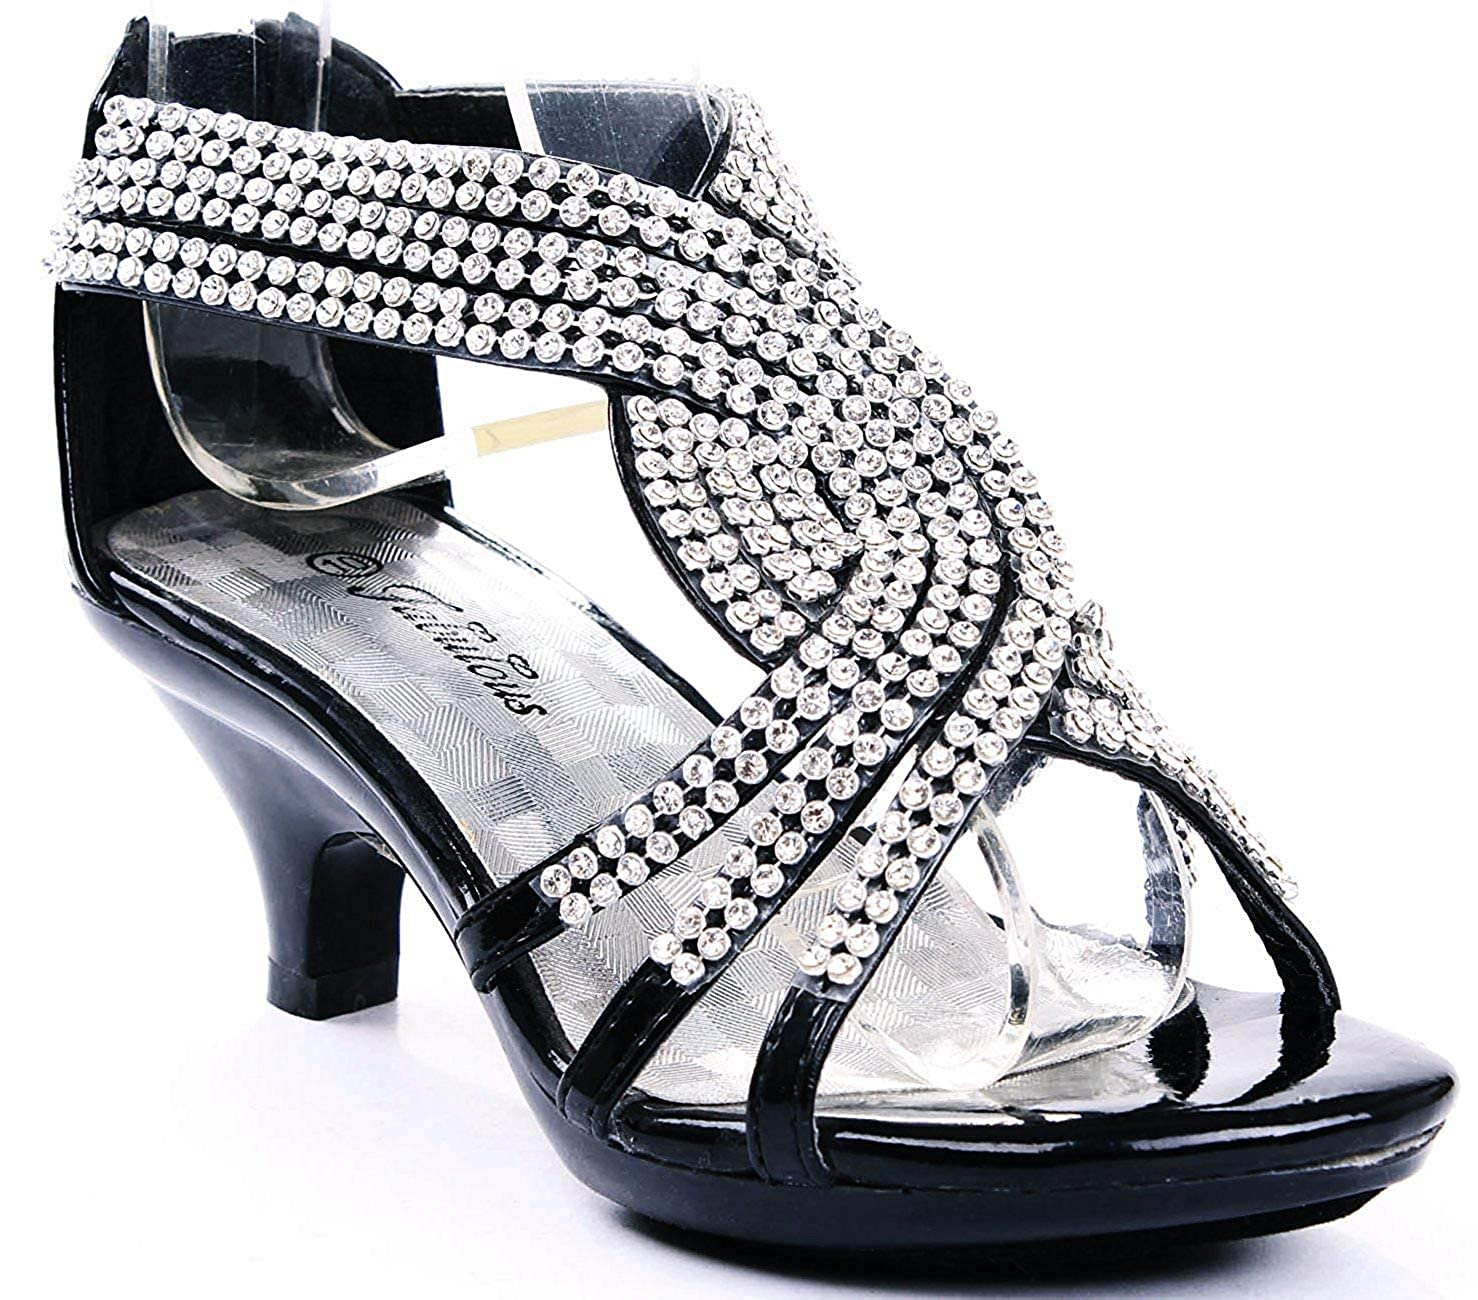 Girls Kitten Heel Dress Pumps w// Rhinestone Ankle Strap Black Size 9-4